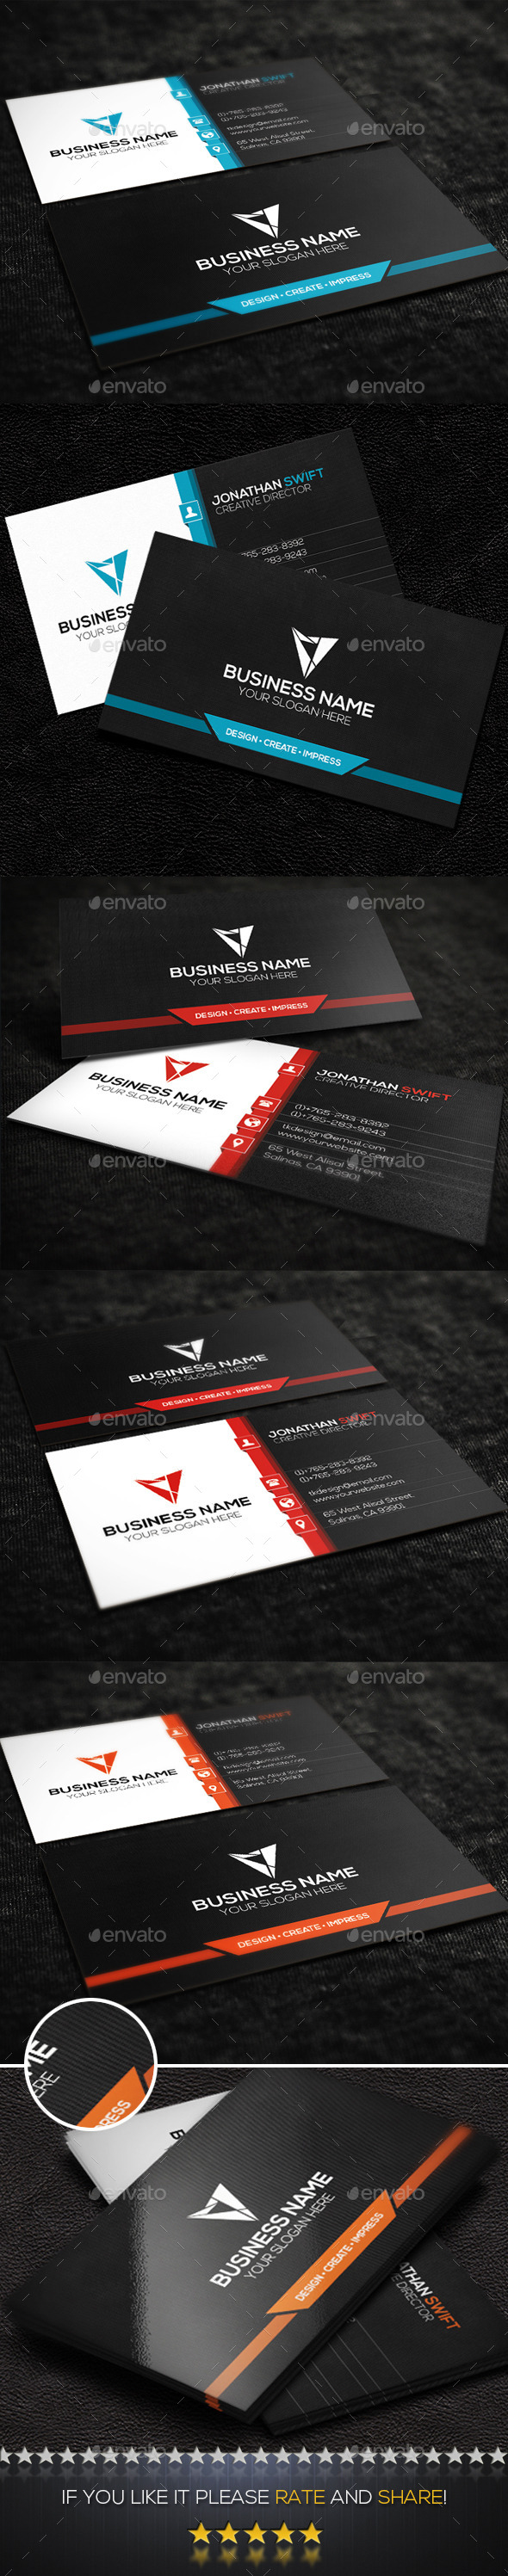 Modern Corporate Business Card No.03 - Corporate Business Cards